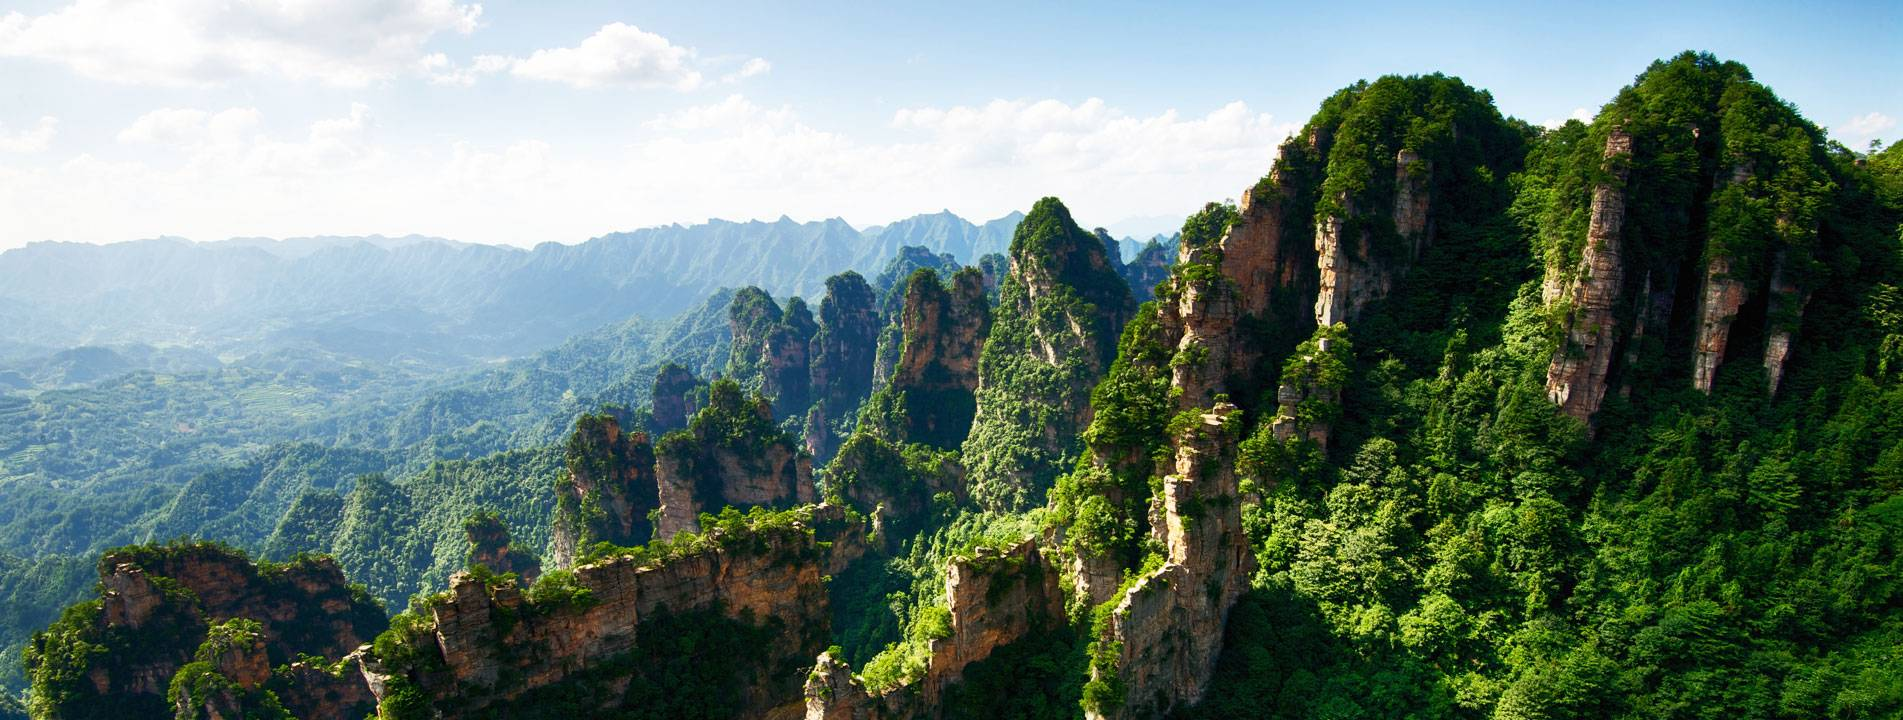 The beautiful peaks in Zhangjiajie Natioanl Forest Park